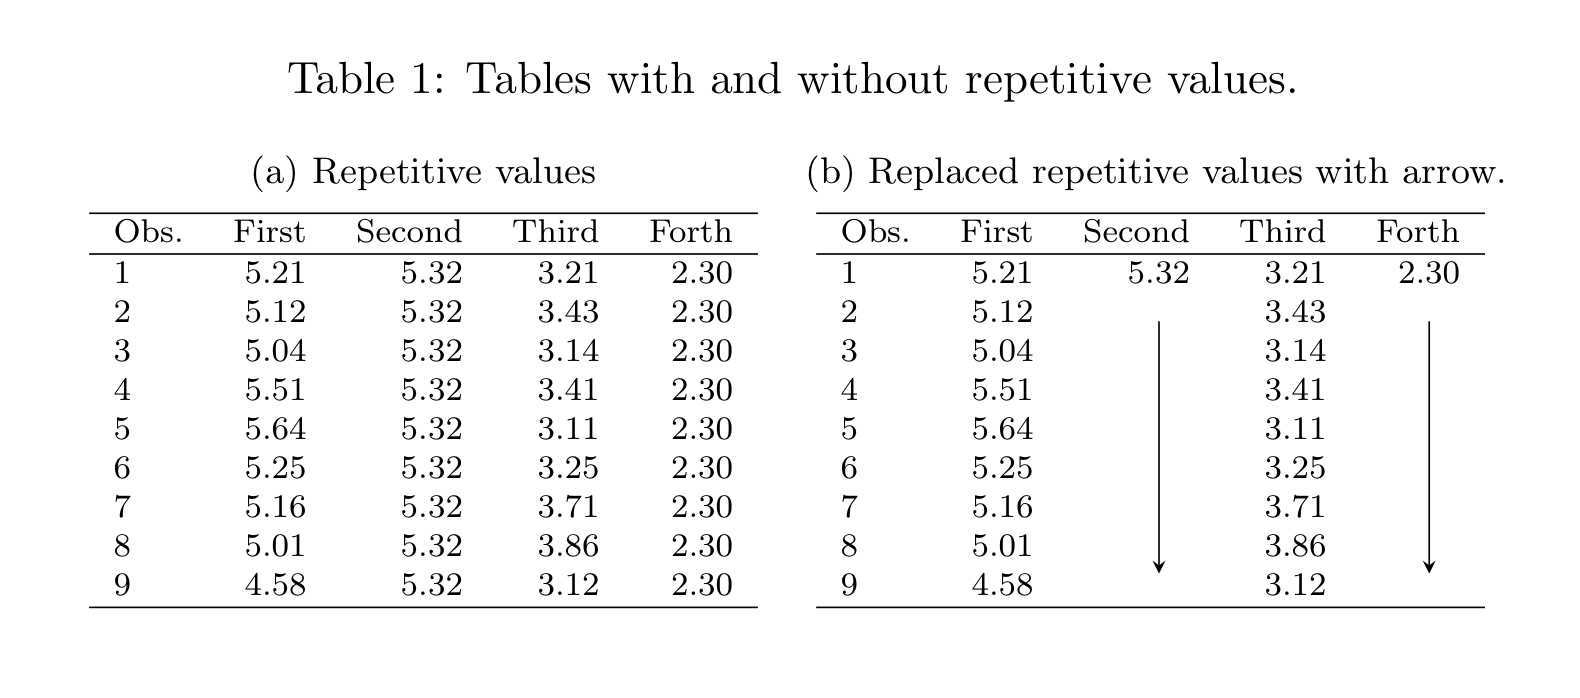 Replacing repetitive values in a table column by an arrow